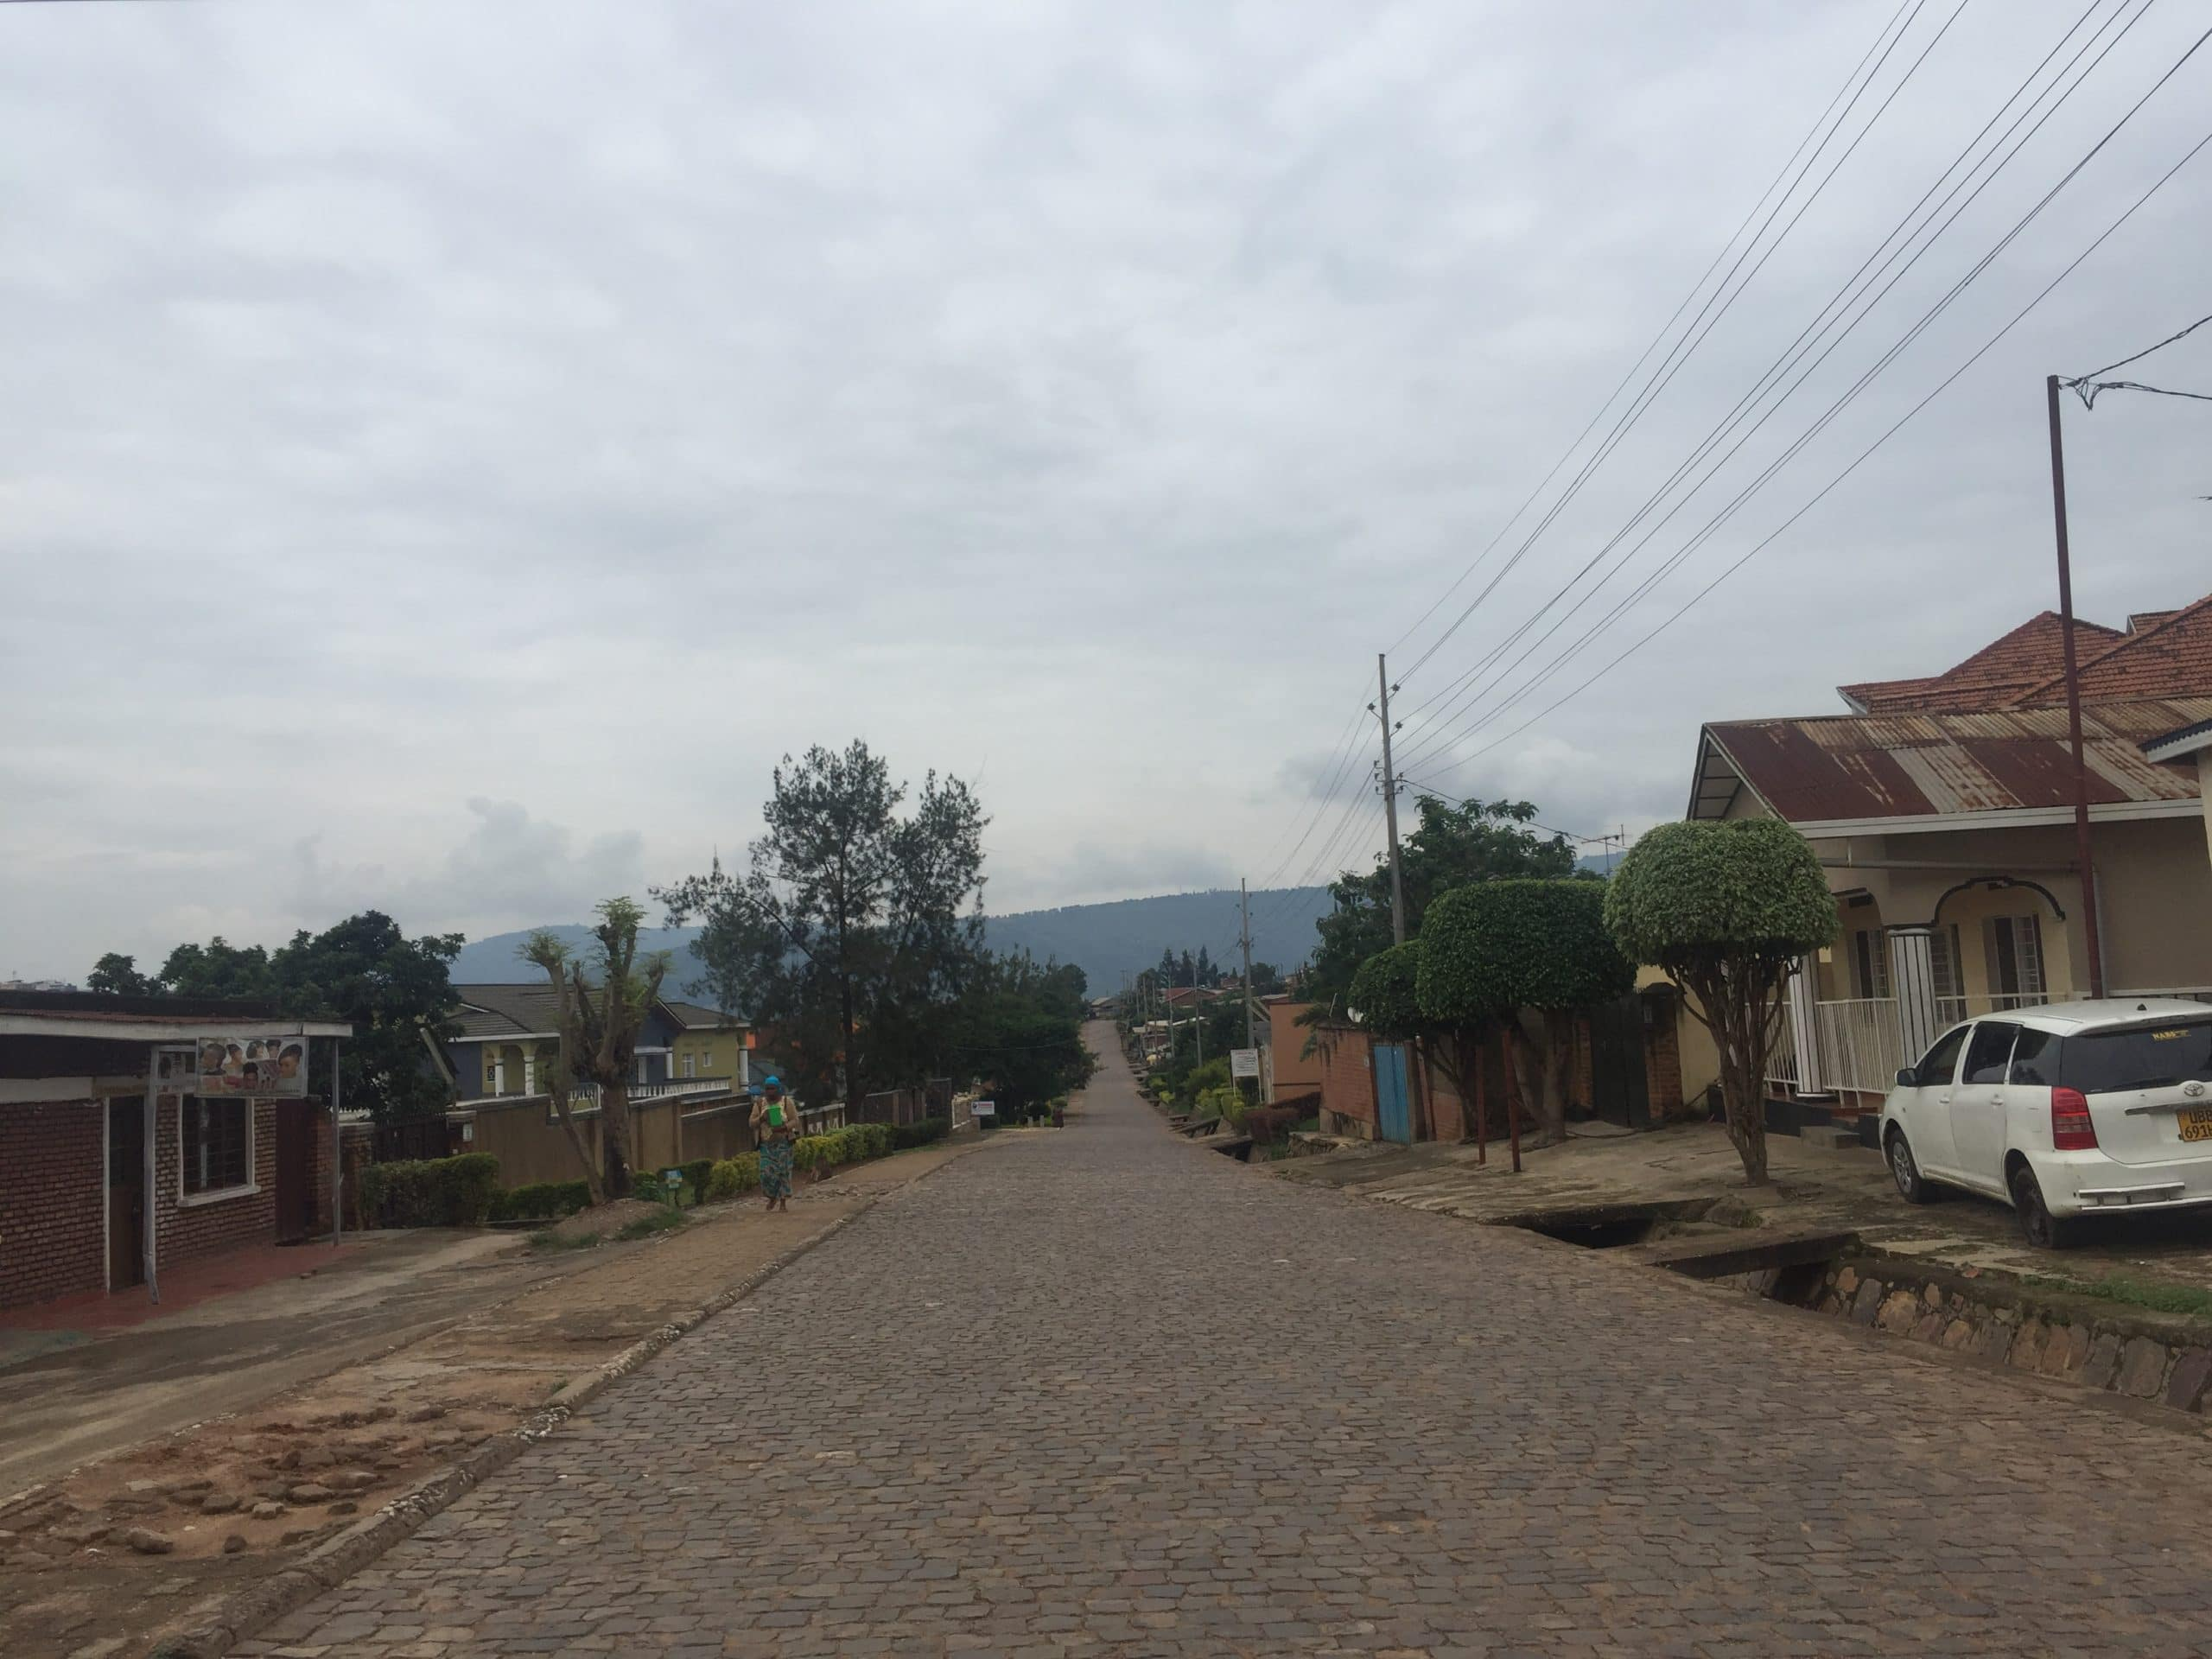 Deserted streets in Kigali during lockdown